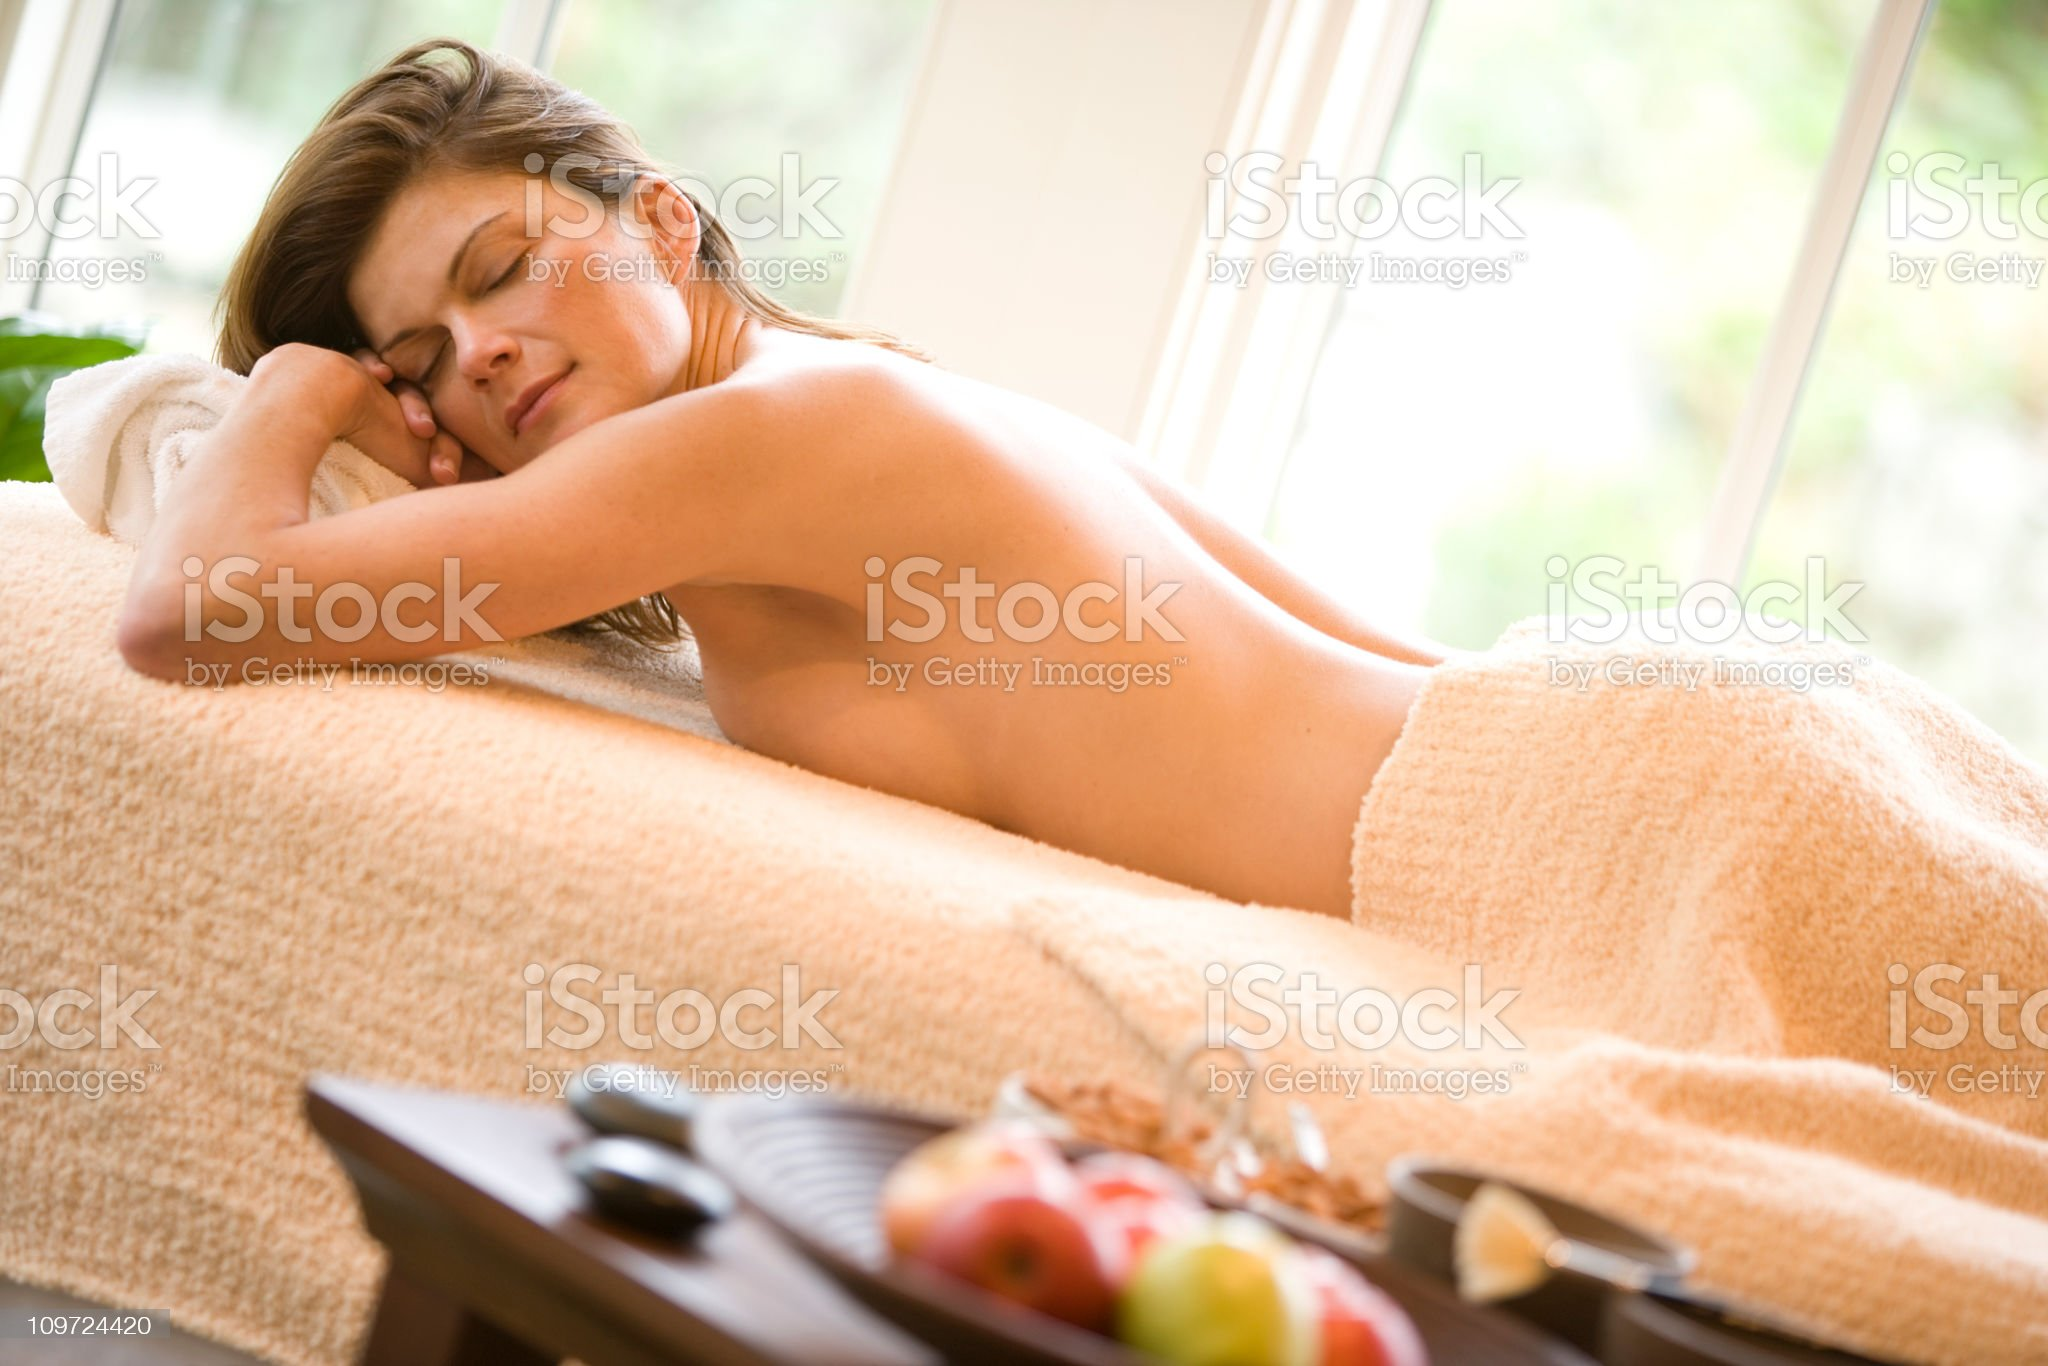 Beautiful Woman in Spa on Massage Table royalty-free stock photo